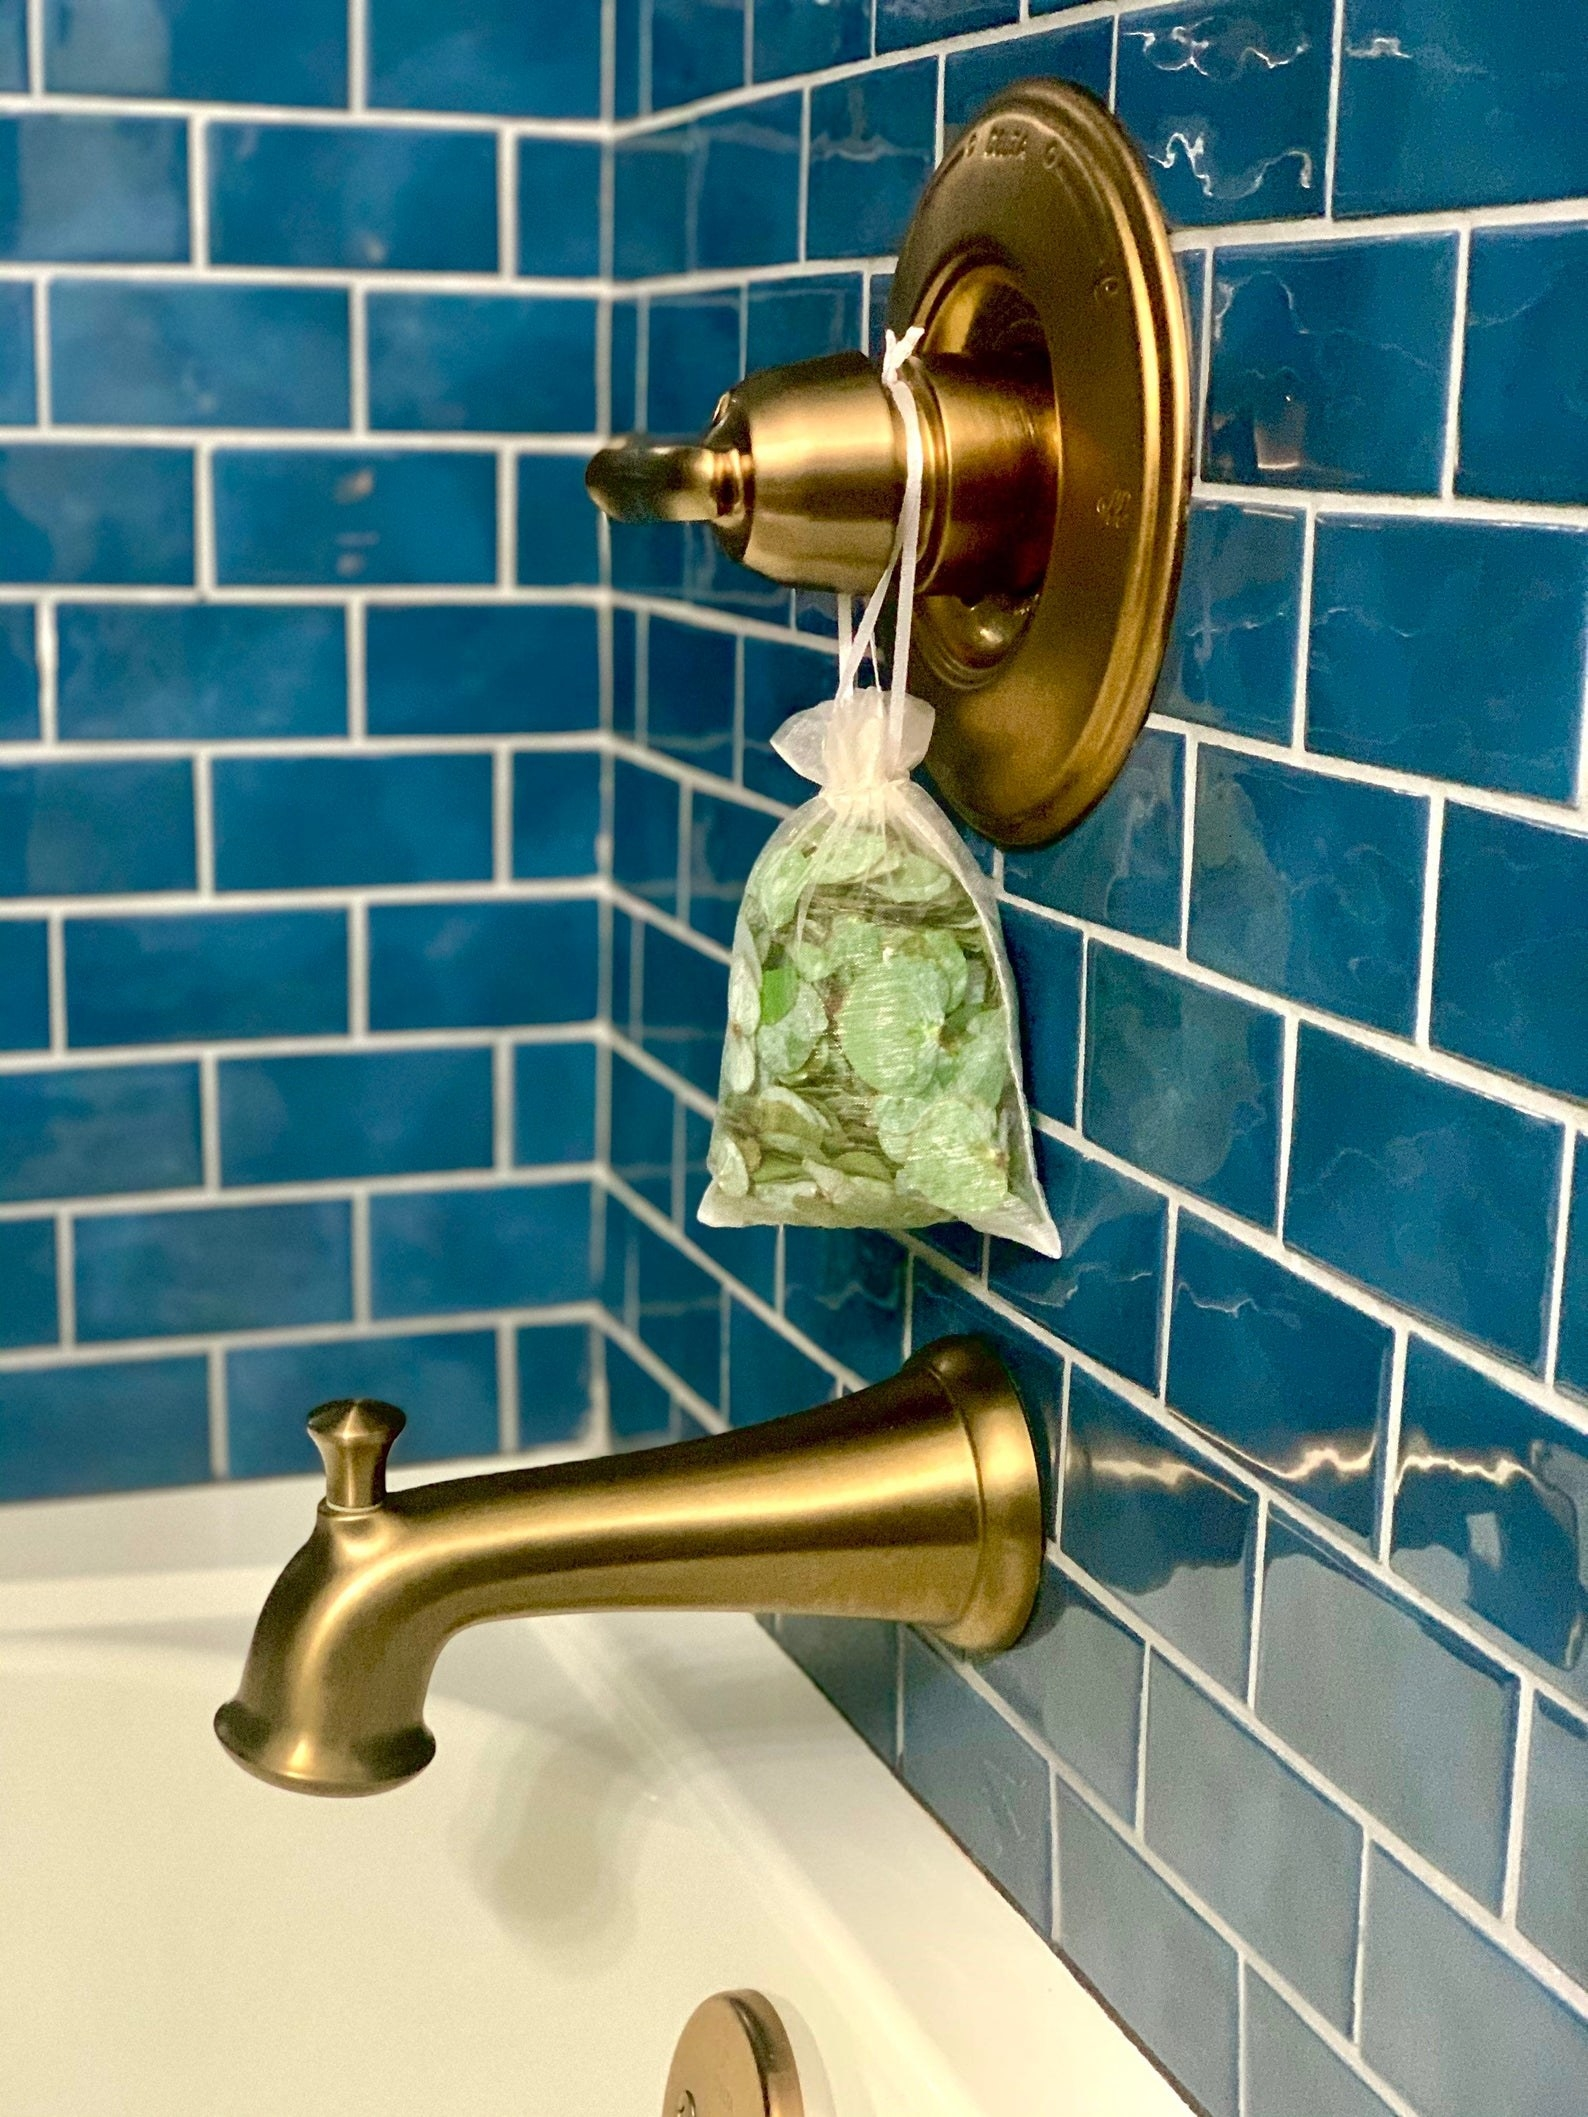 a eucalyptus shower pouch hanging from a bathtub's handle valve